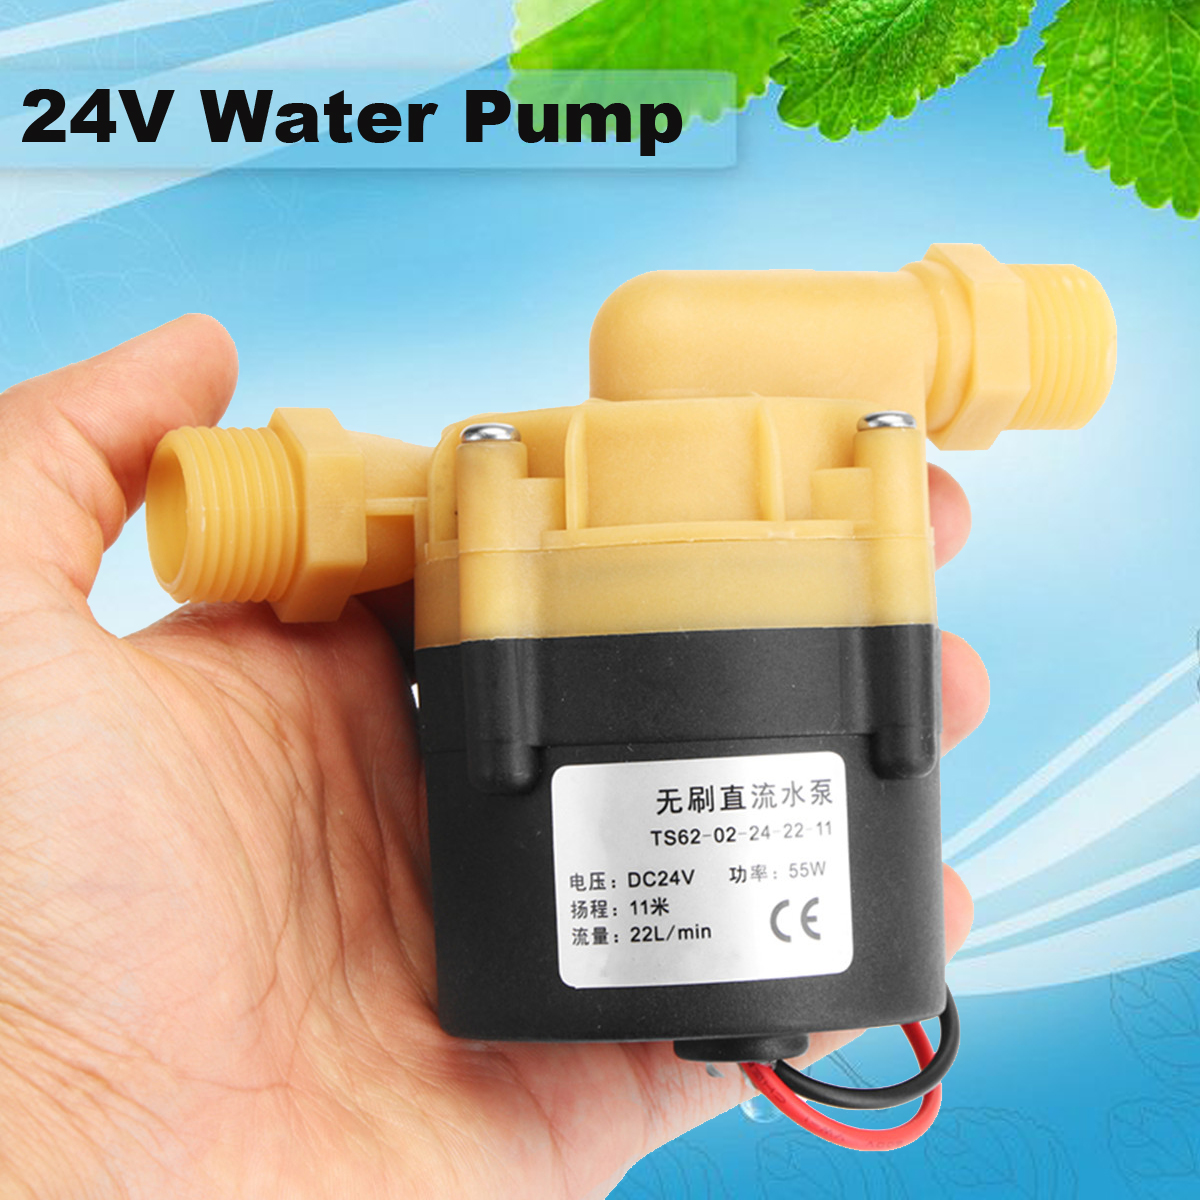 Brushless DC 24V 55W 22L/min Water Pump Mini Booster Pump 1.5A 11m For Chiller Machine And LED Light Pump